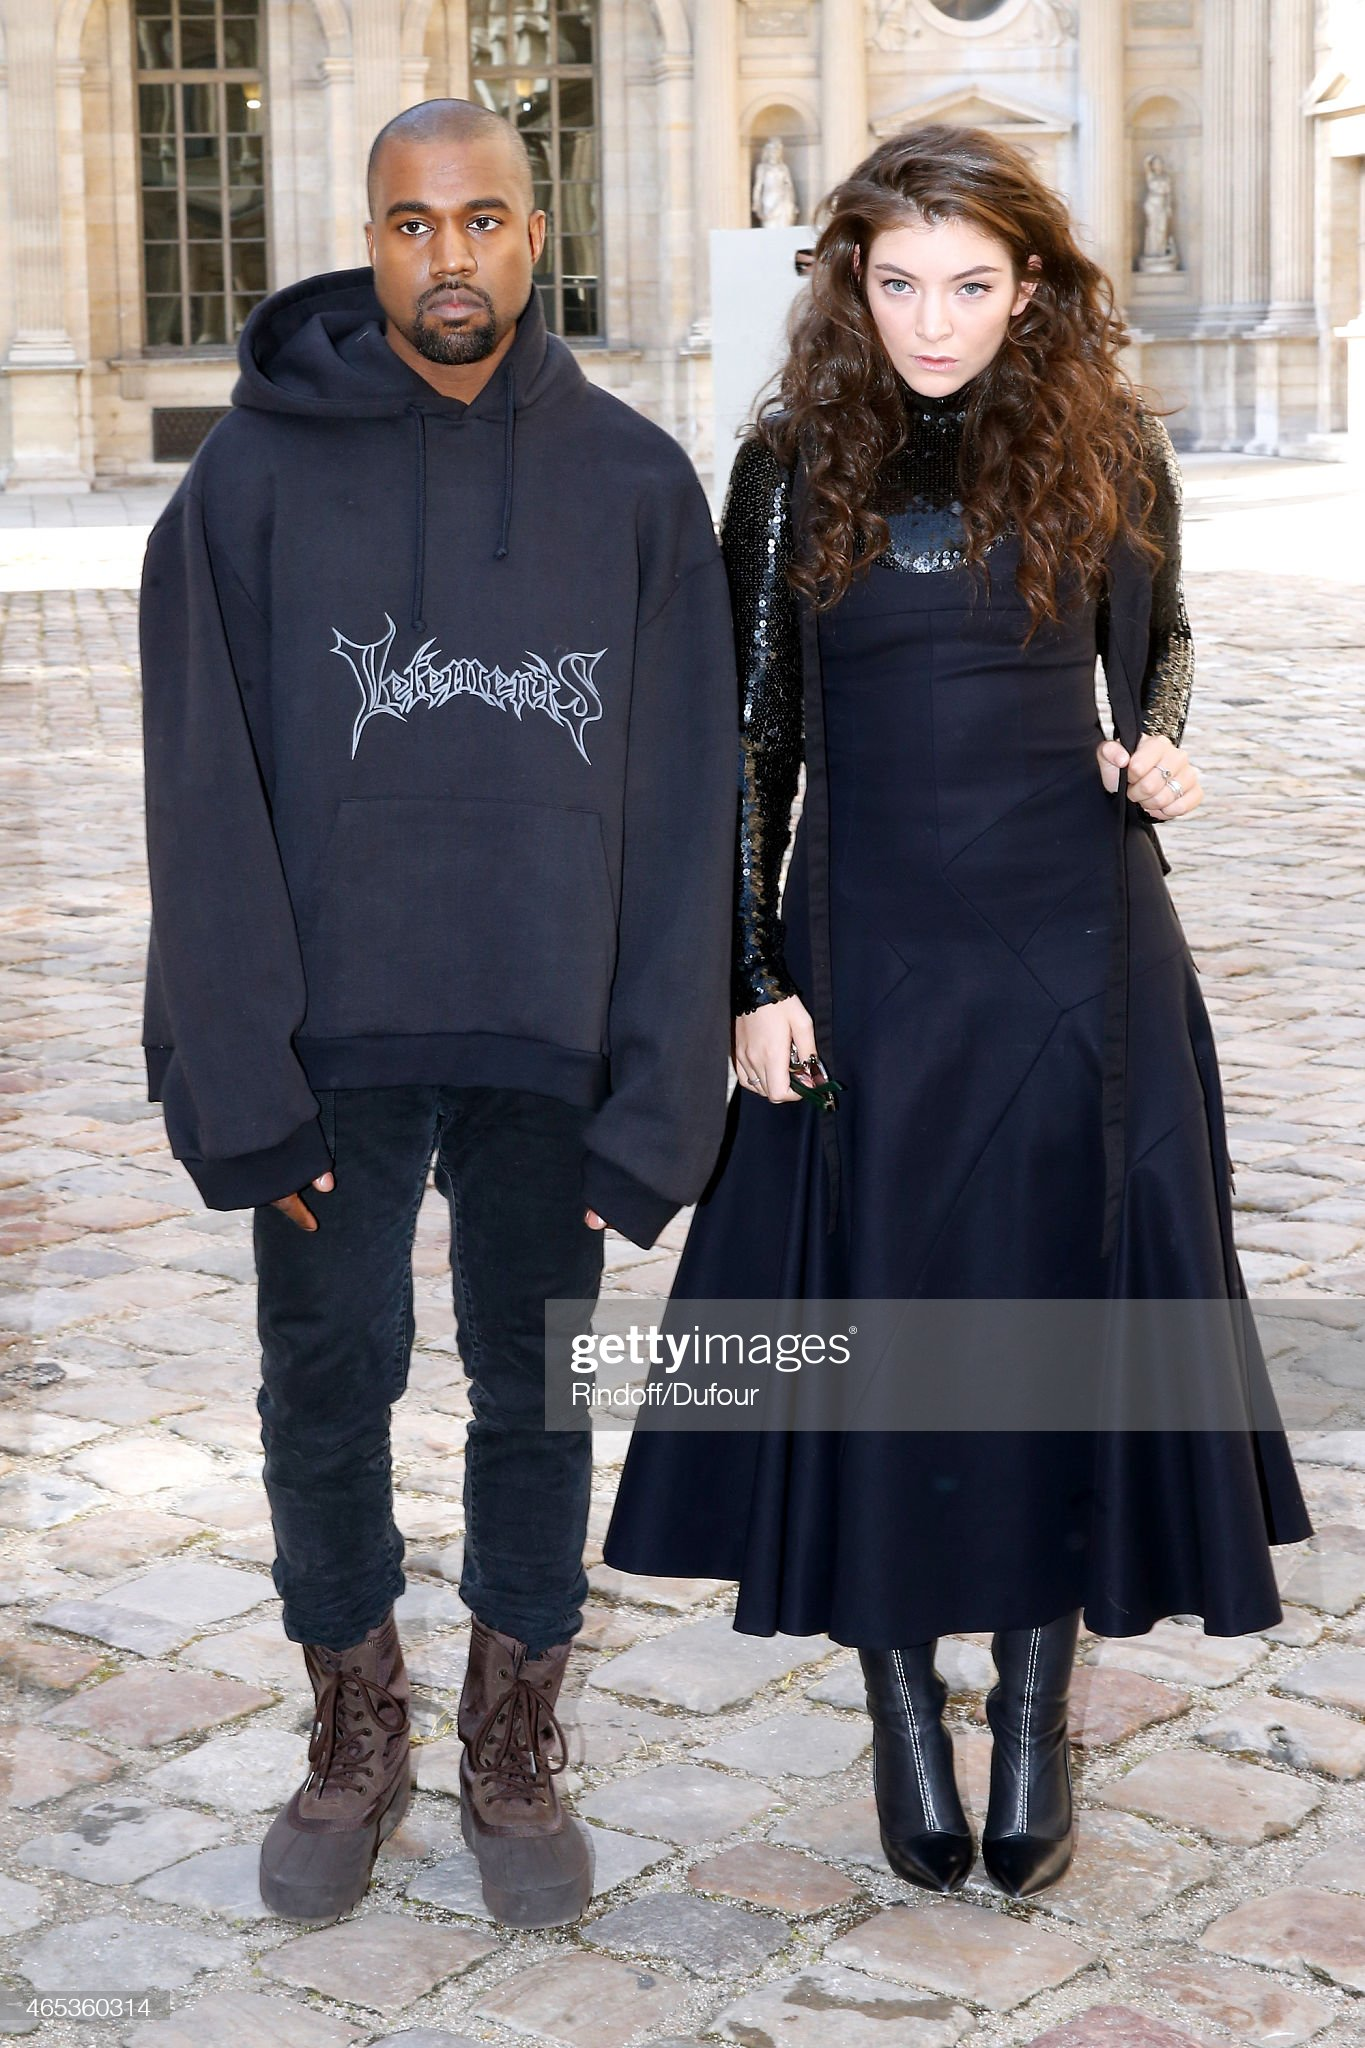 ¿Cuánto mide Kanye West? - Altura - Real height Kanye-west-and-lorde-attend-the-christian-dior-show-as-part-of-the-picture-id465360314?s=2048x2048